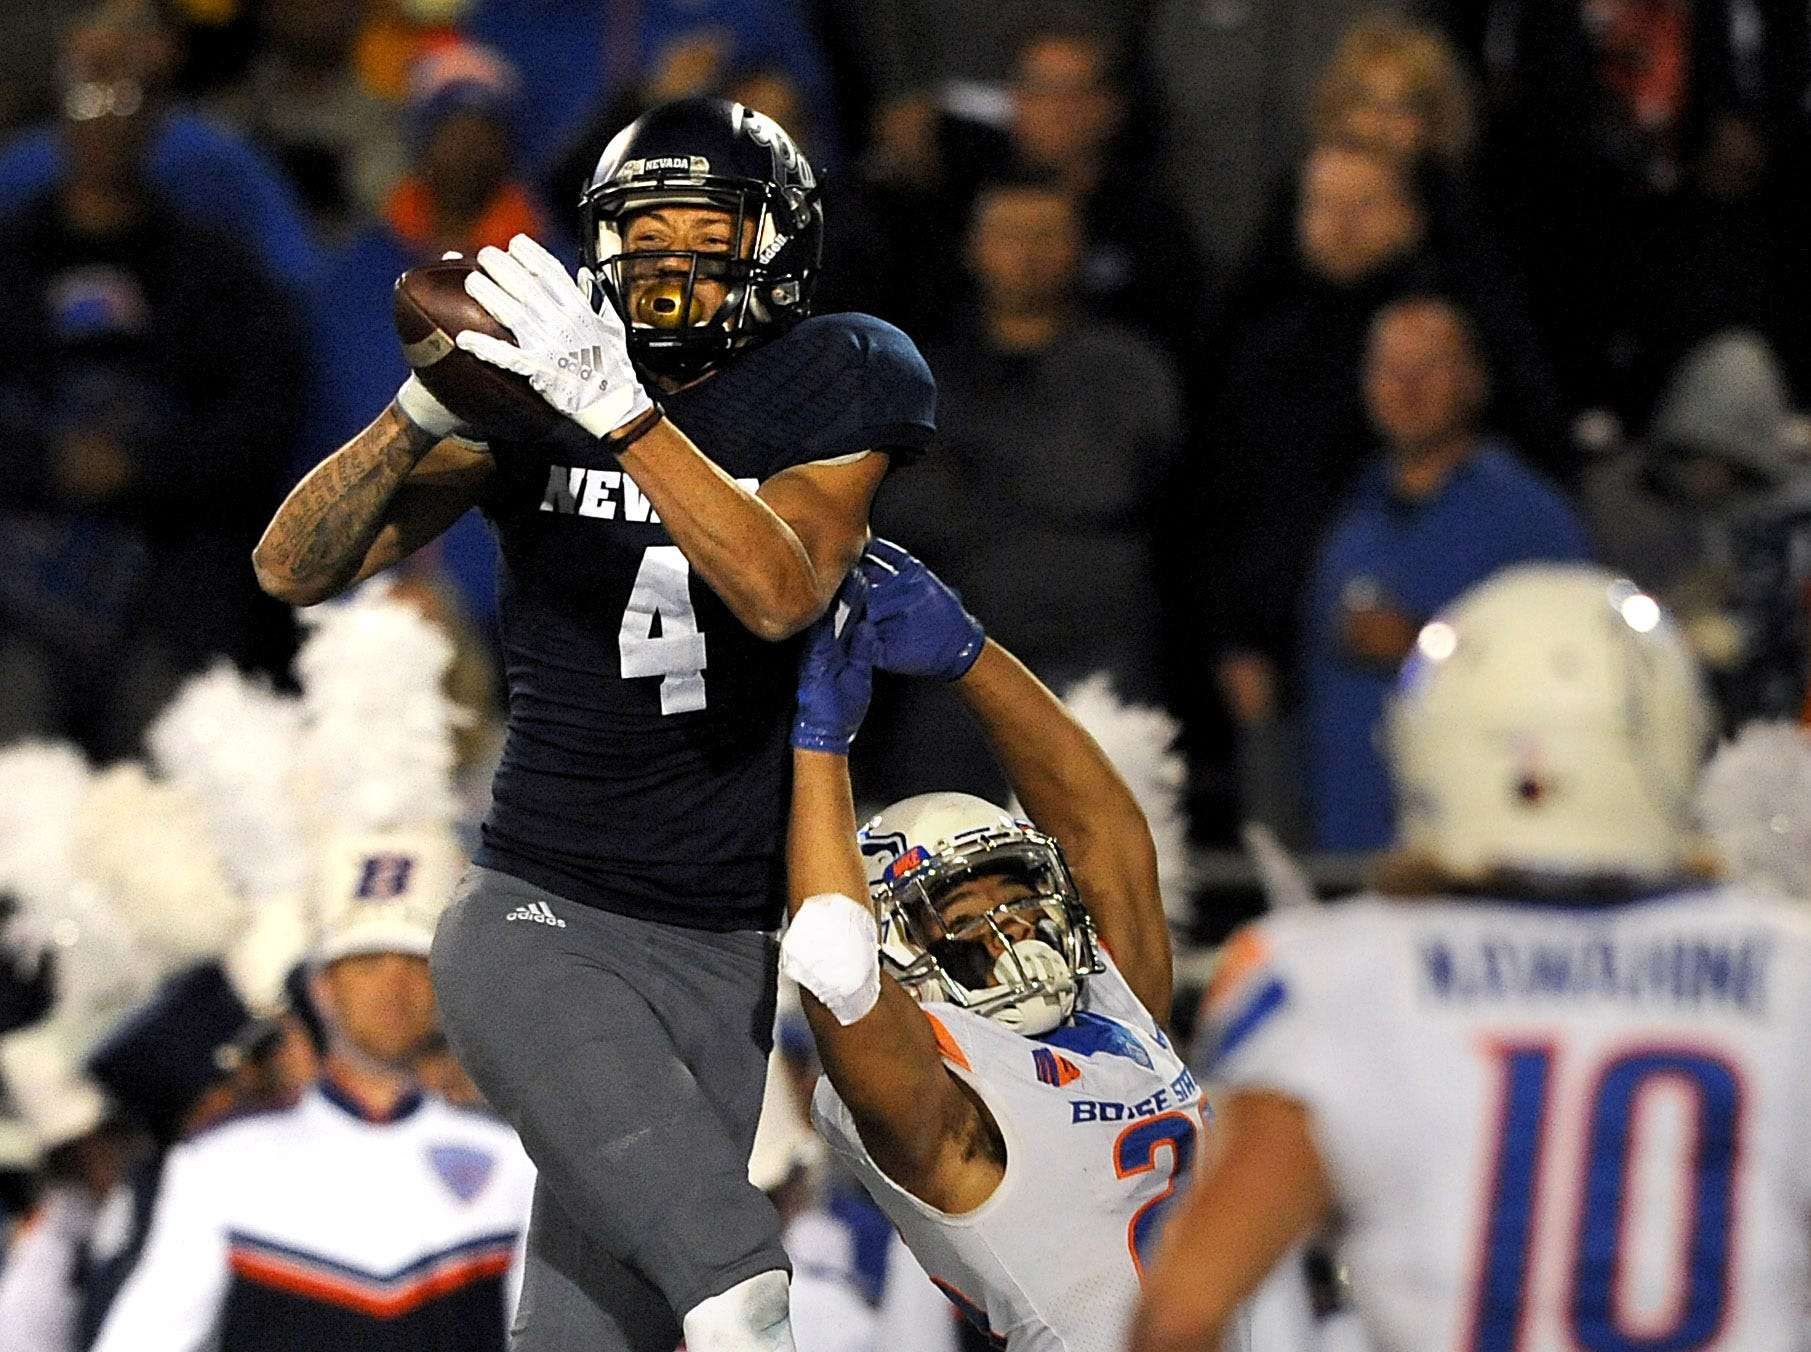 Nevada's Elijah Cooks makes a catch for a touchdown  while taking on Boise St. during their football game at Mackay Stadium in Reno on Oct. 13, 2018.